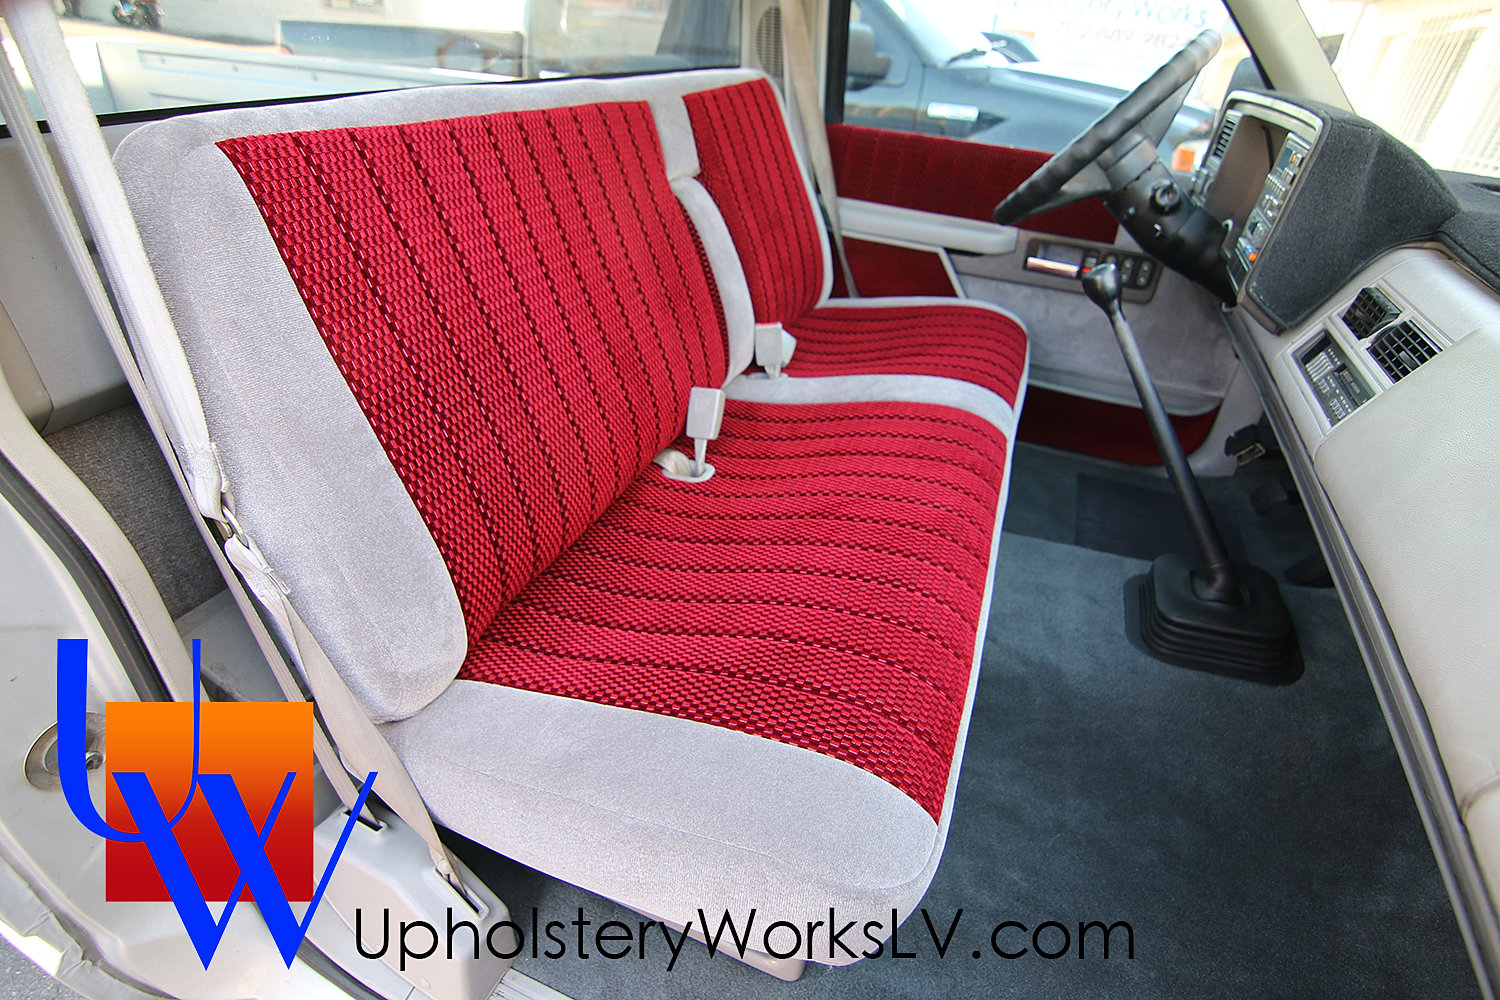 upholstery works las vegas commercial residential upholstery 1991 gmc custom interior. Black Bedroom Furniture Sets. Home Design Ideas